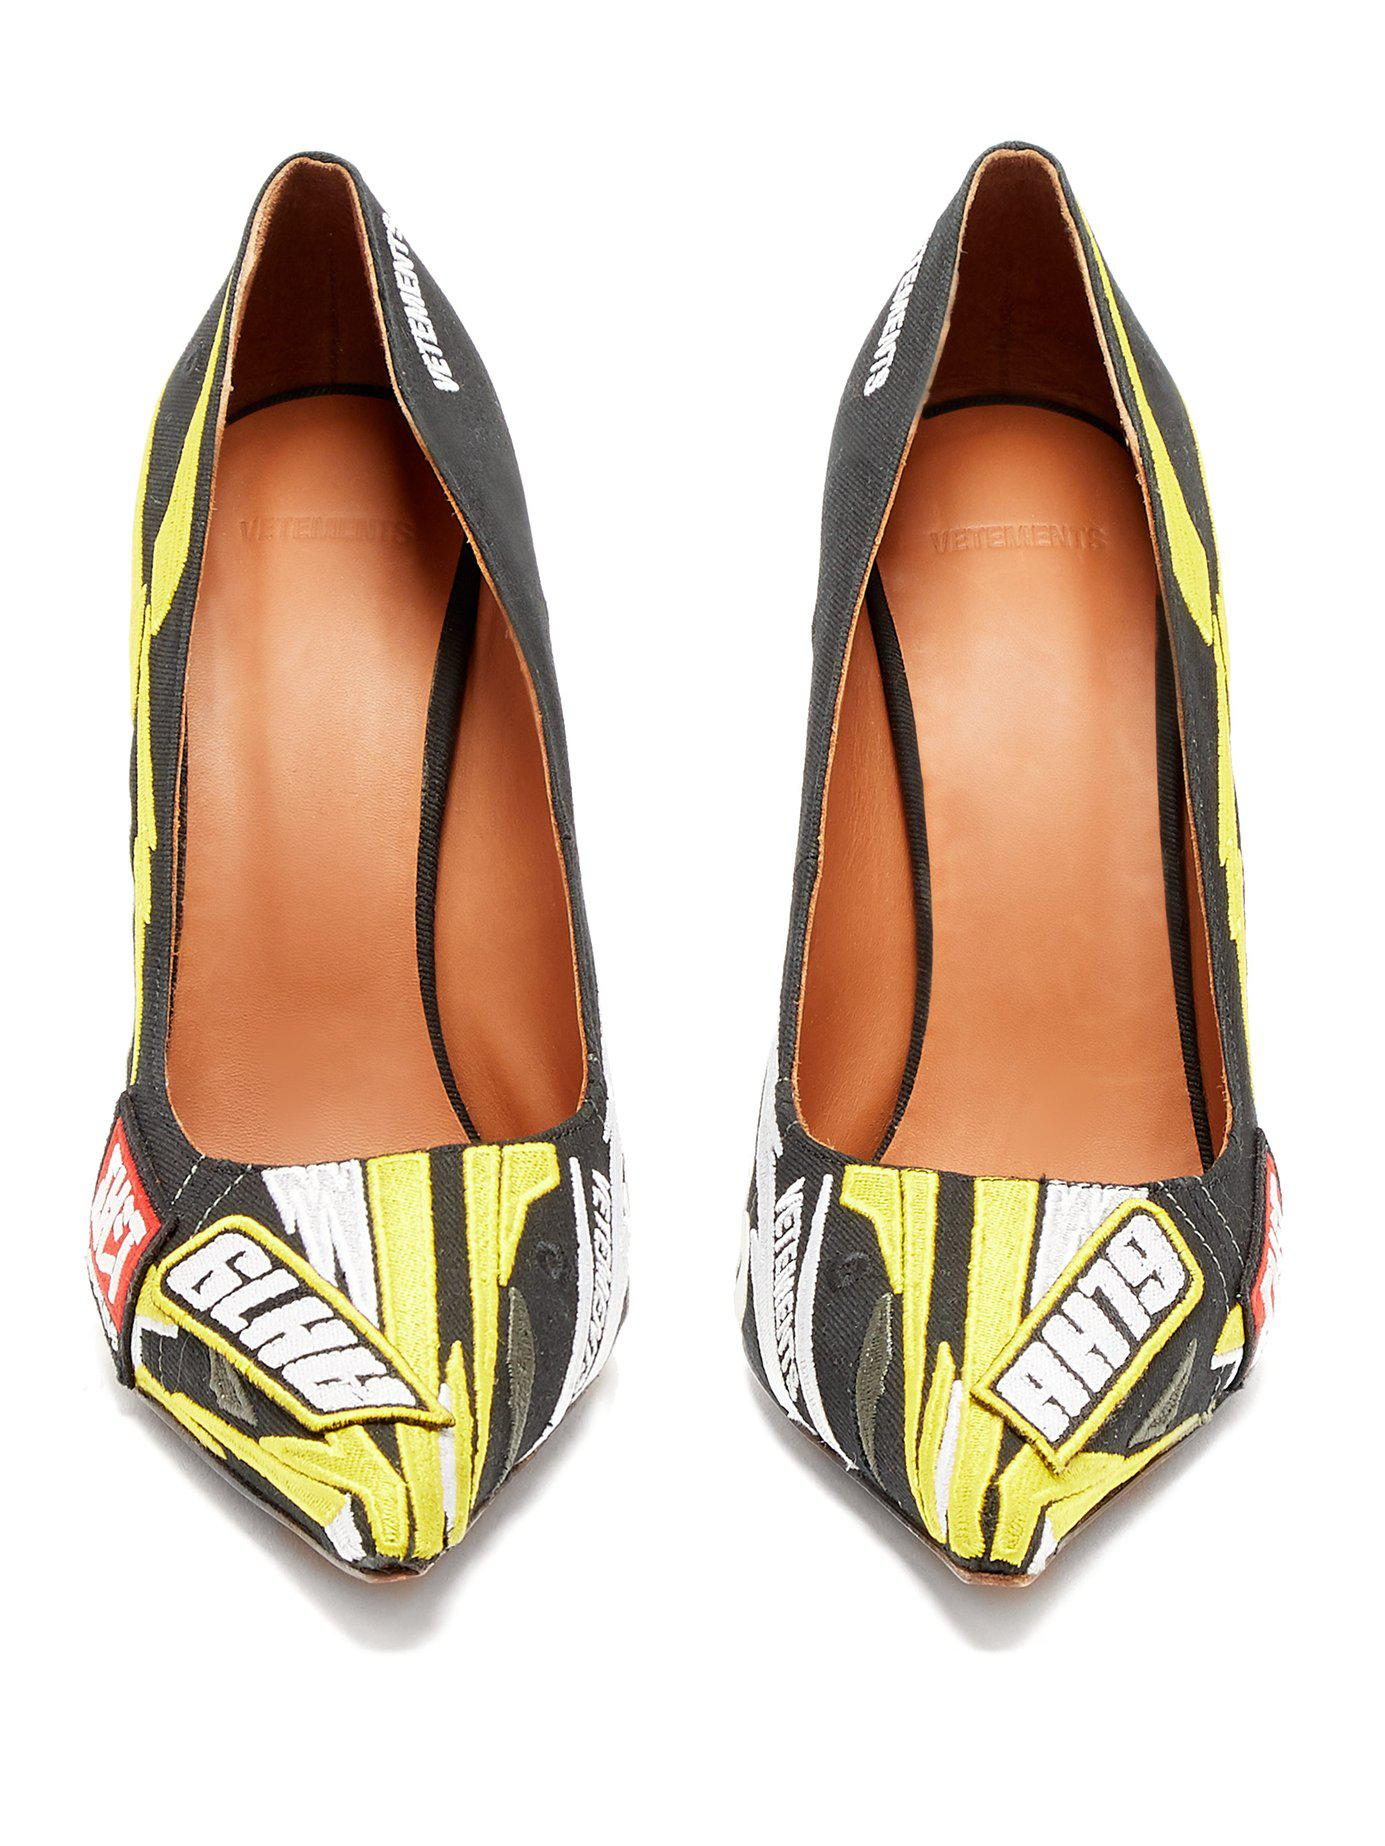 59d620ee29d1 Vetements - Multicolor Racer Embroidered Point Toe Pumps - Lyst. View  fullscreen